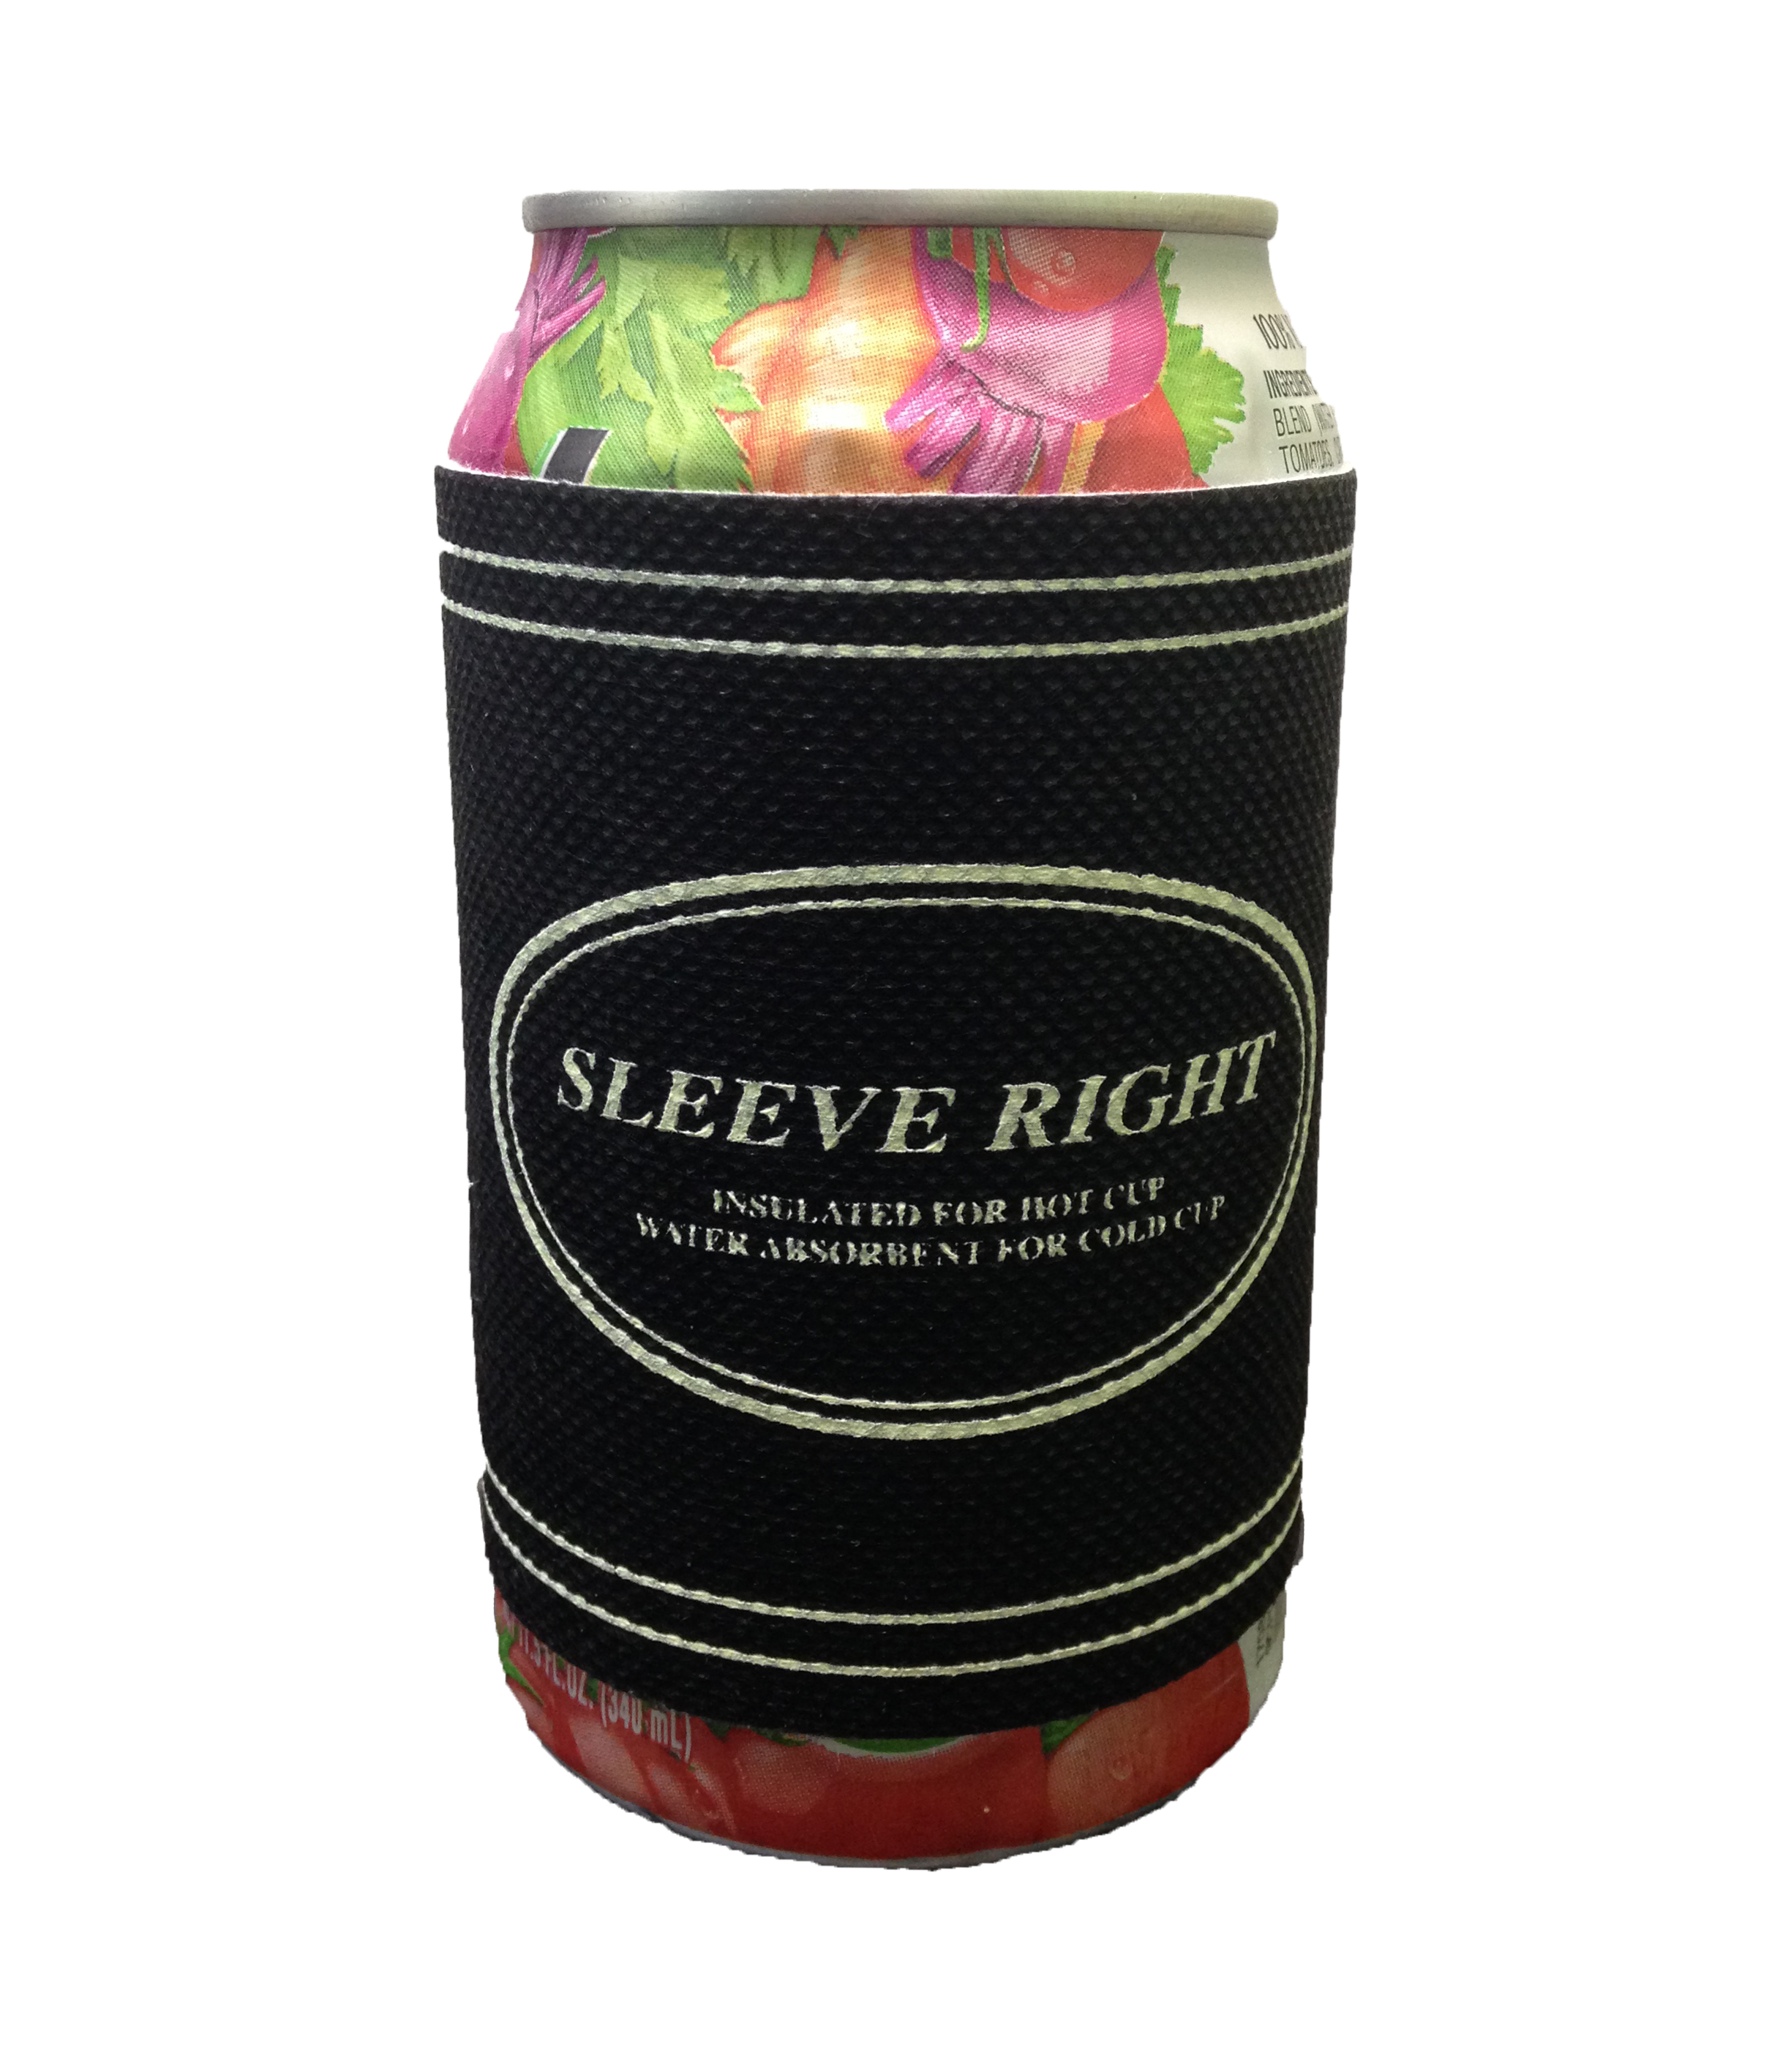 Insulated sleeves for cans and bottles